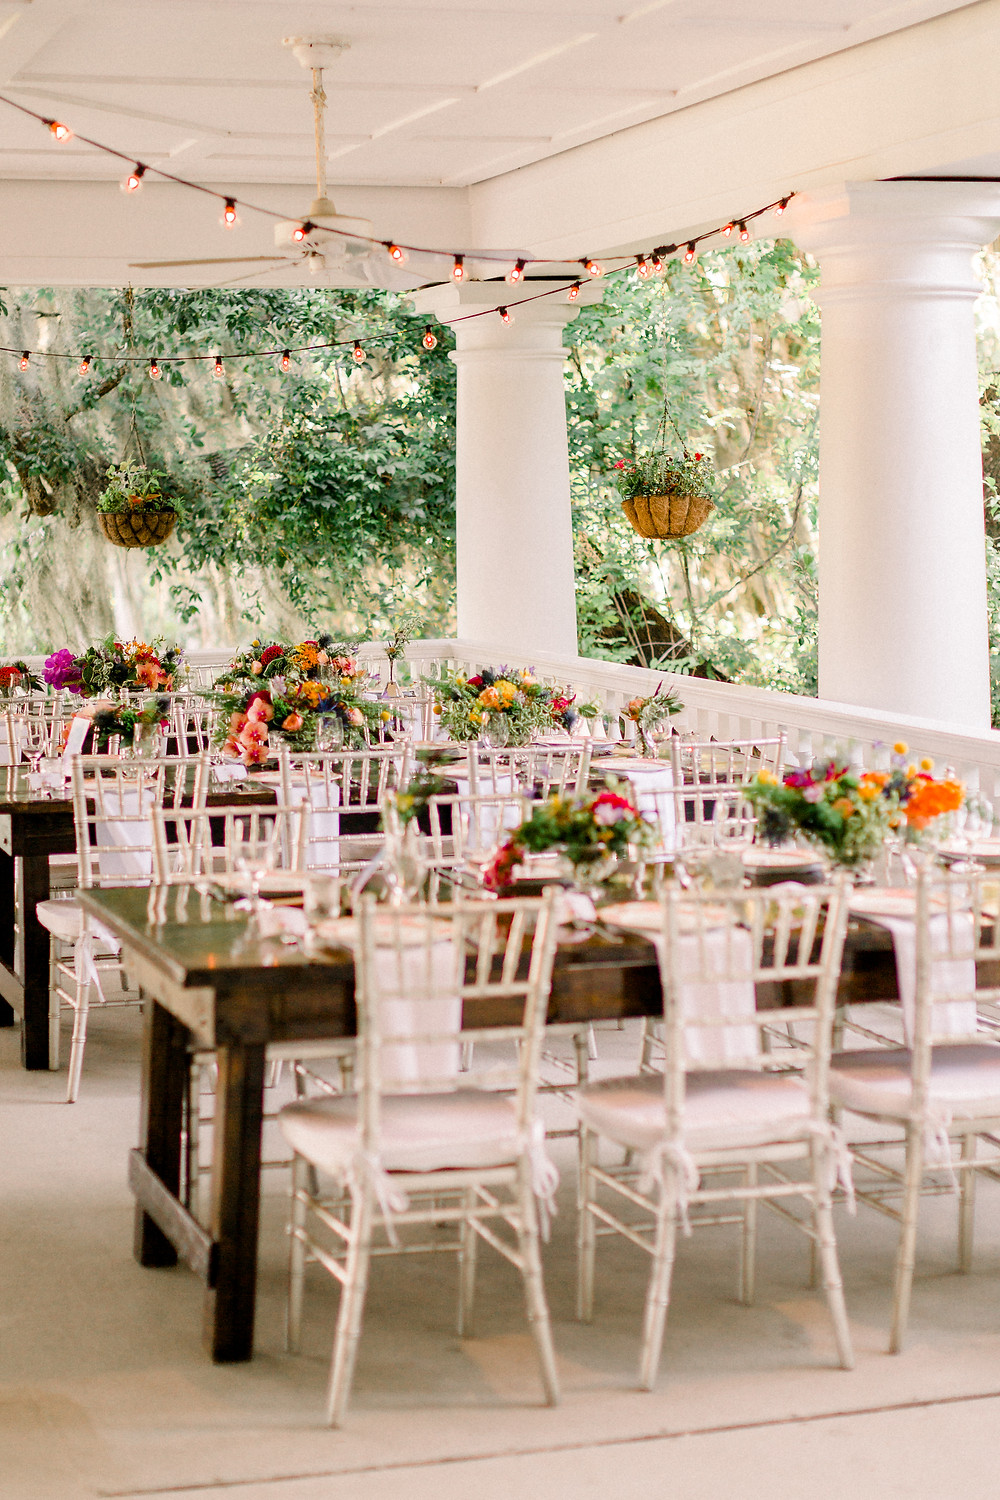 Veranda-House-Wedding-Reception-Magnolia-Plantation